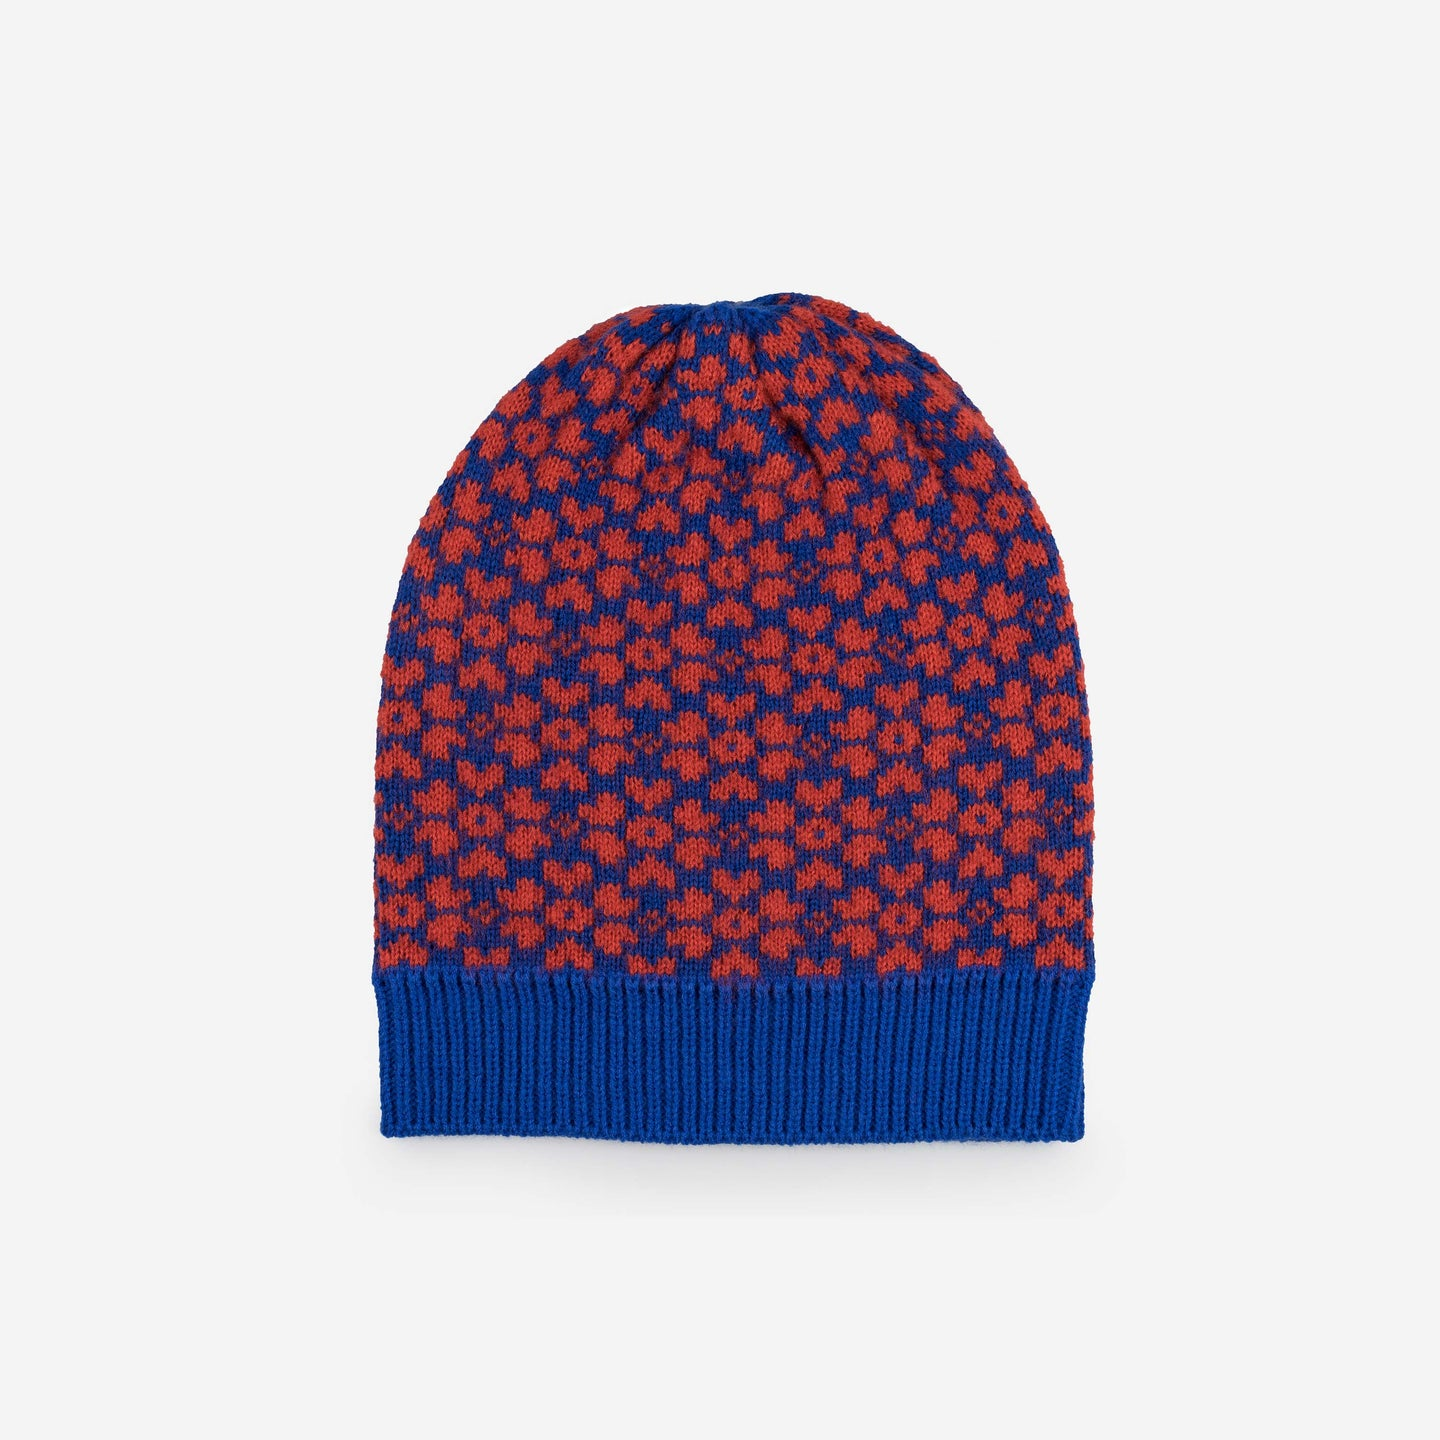 Sakura Floral Pattern Knit Hat